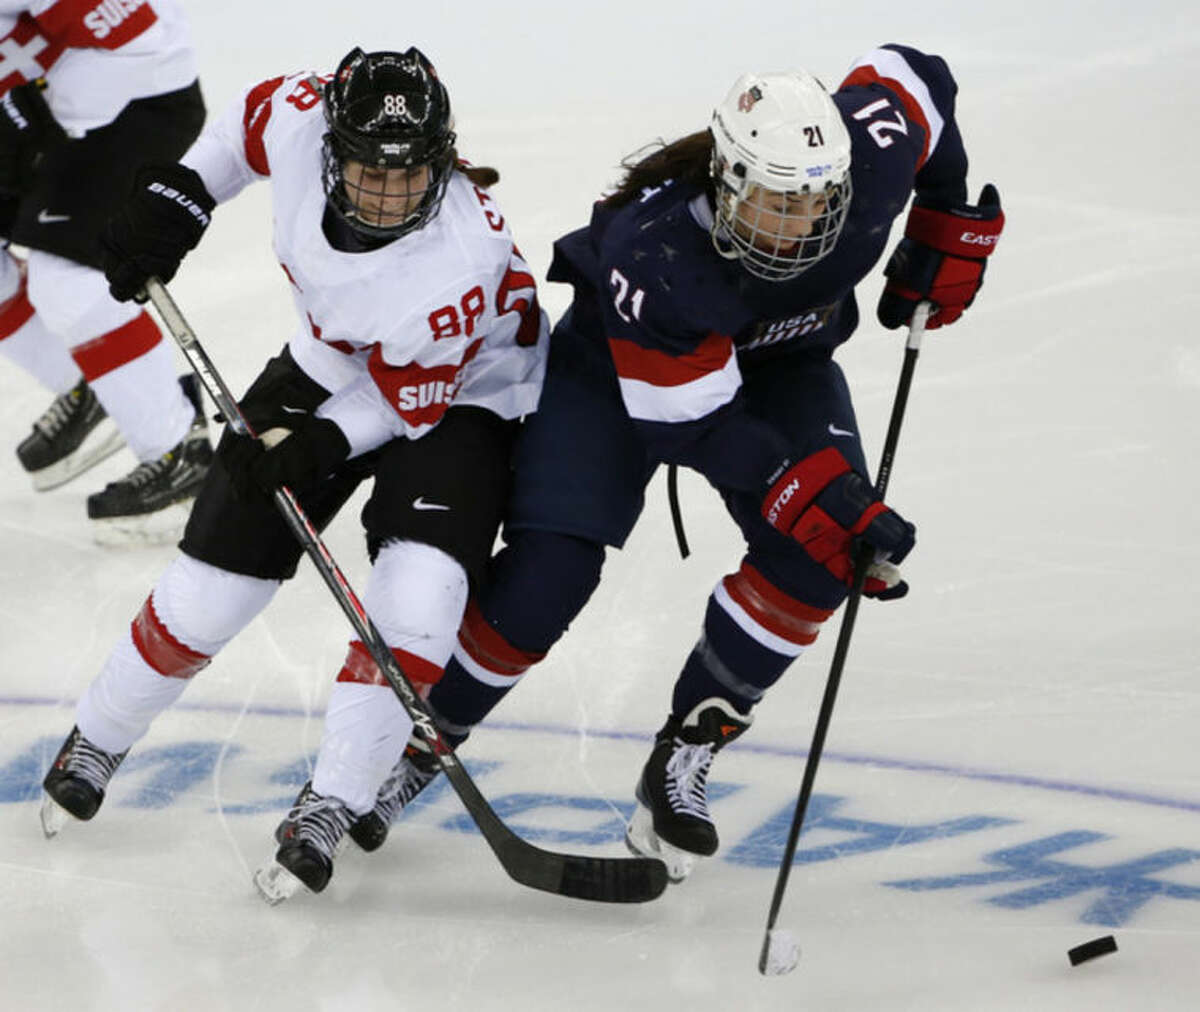 Hilary Knight of the Untied States takes the puck away from Phoebe Stanz of Switzerland during the second period of the 2014 Winter Olympics women's ice hockey game at Shayba Arena, Monday, Feb. 10, 2014, in Sochi, Russia. (AP Photo/Petr David Josek)